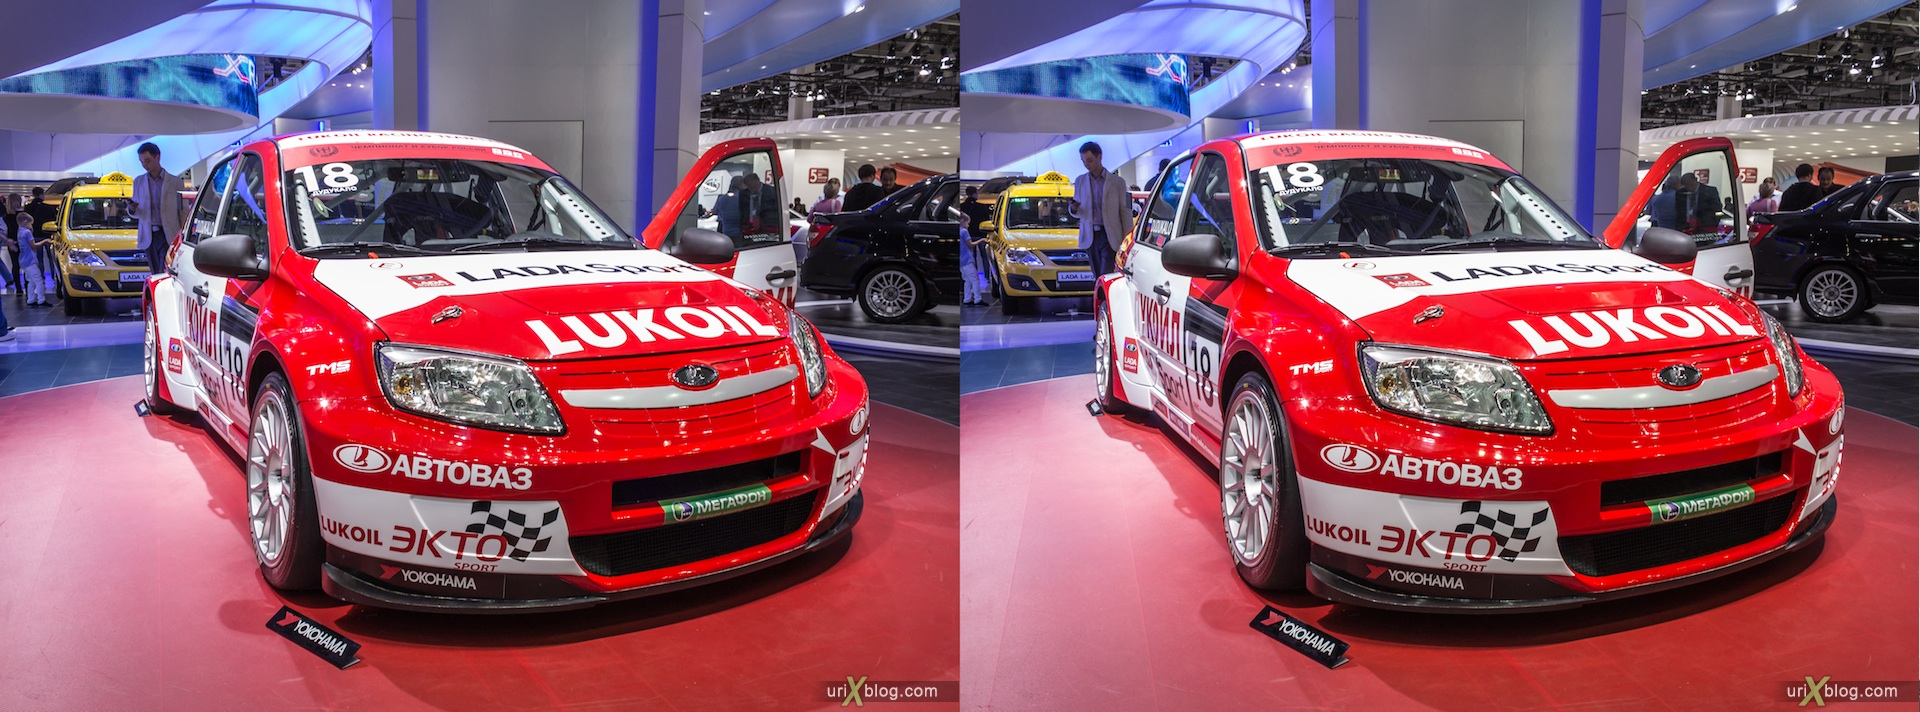 2012, Lada Sport, Moscow International Automobile Salon, auto show, 3D, stereo pair, cross-eyed, crossview